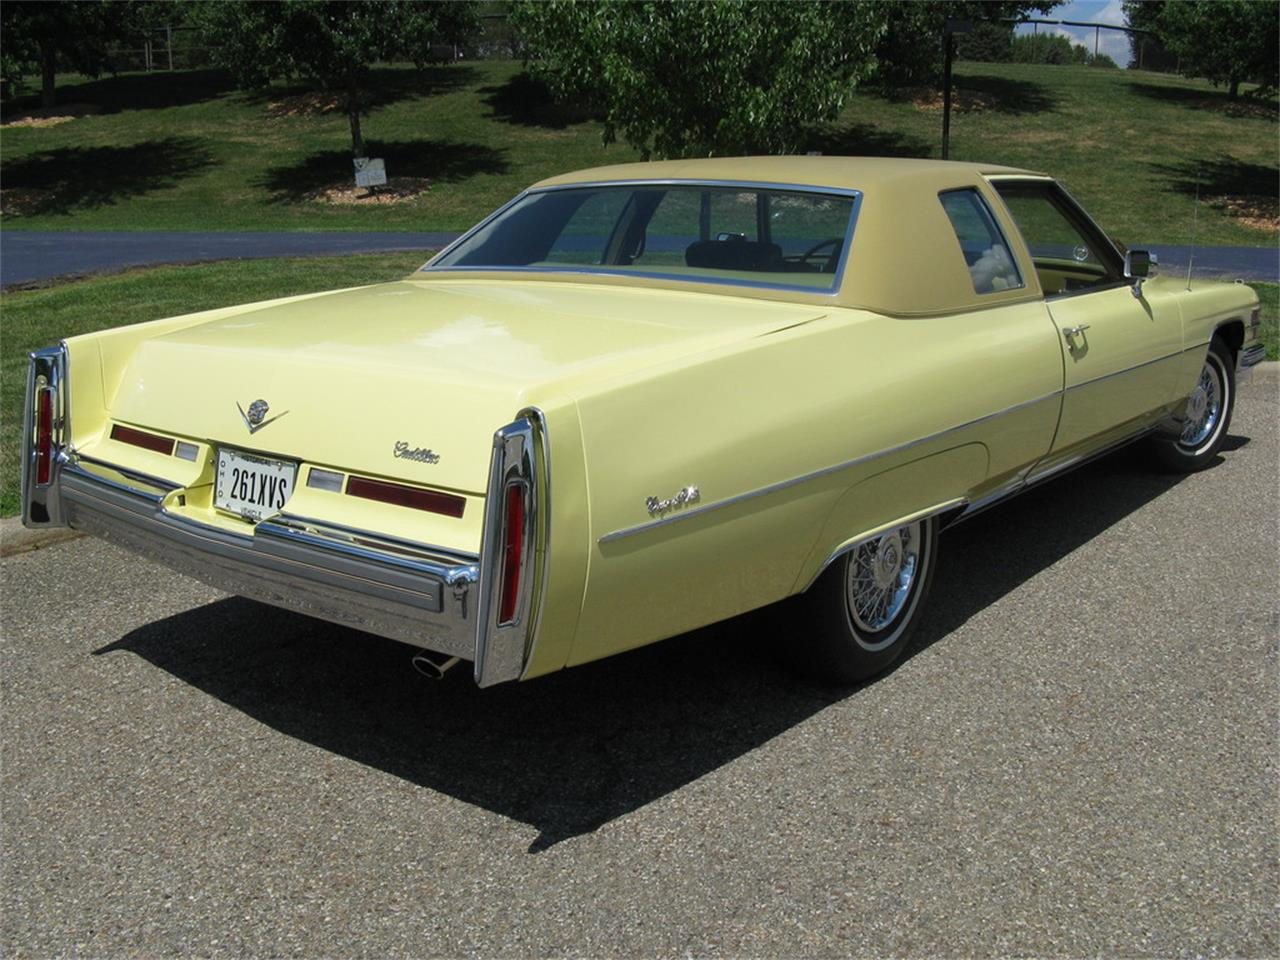 Large Picture of '74 Cadillac Coupe DeVille - $13,500.00 - J3ZZ